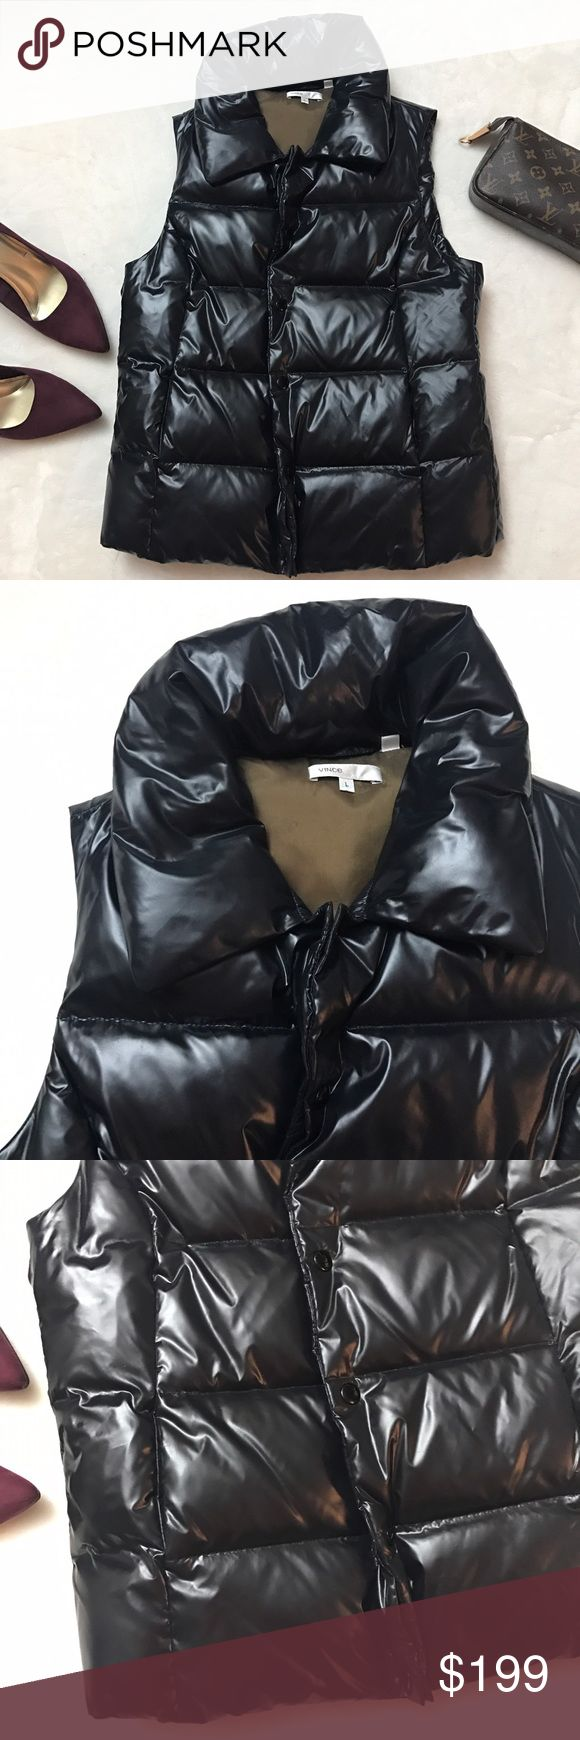 VINCE Black Down Feather Quilted Puffer Vest VINCE Black Down Feather Quilted Puffer Vest size large. Like new!! Down and Feather filled Puffer Vest in size large. Retails for $395. Snap Button closure. Vince Jackets & Coats Vests